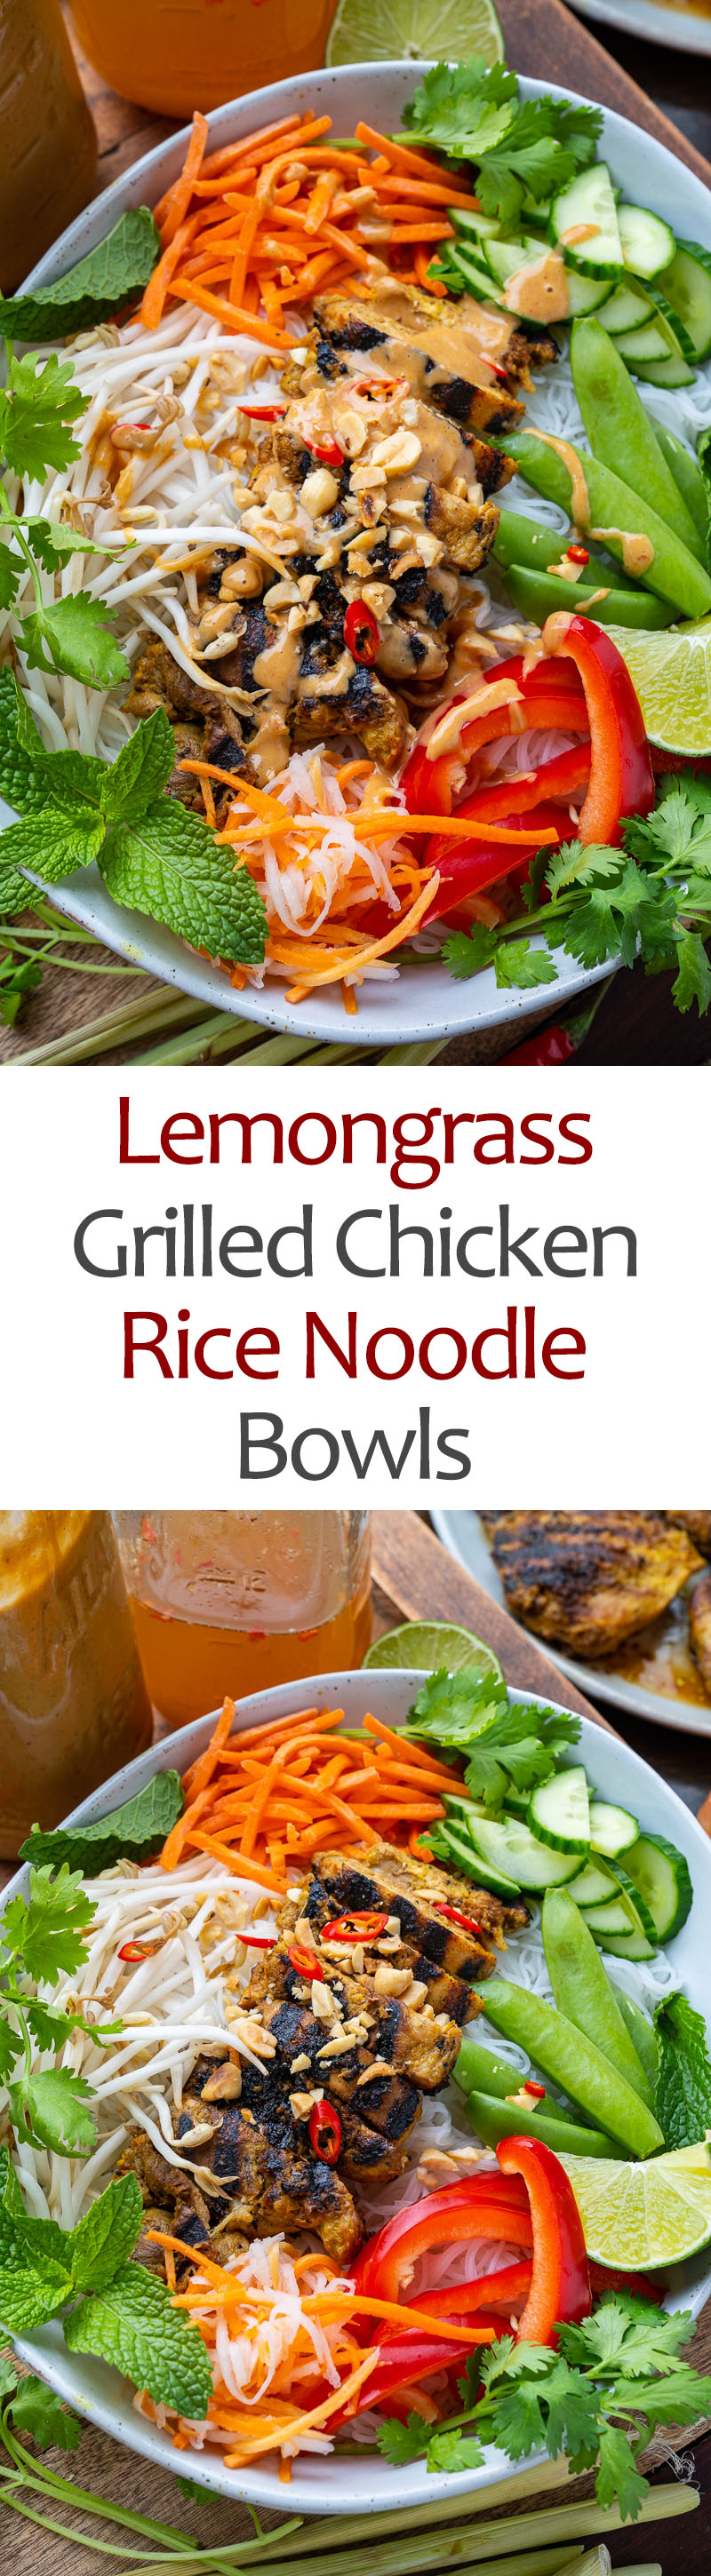 Lemongrass Grilled Chicken Rice Noodle Bowls